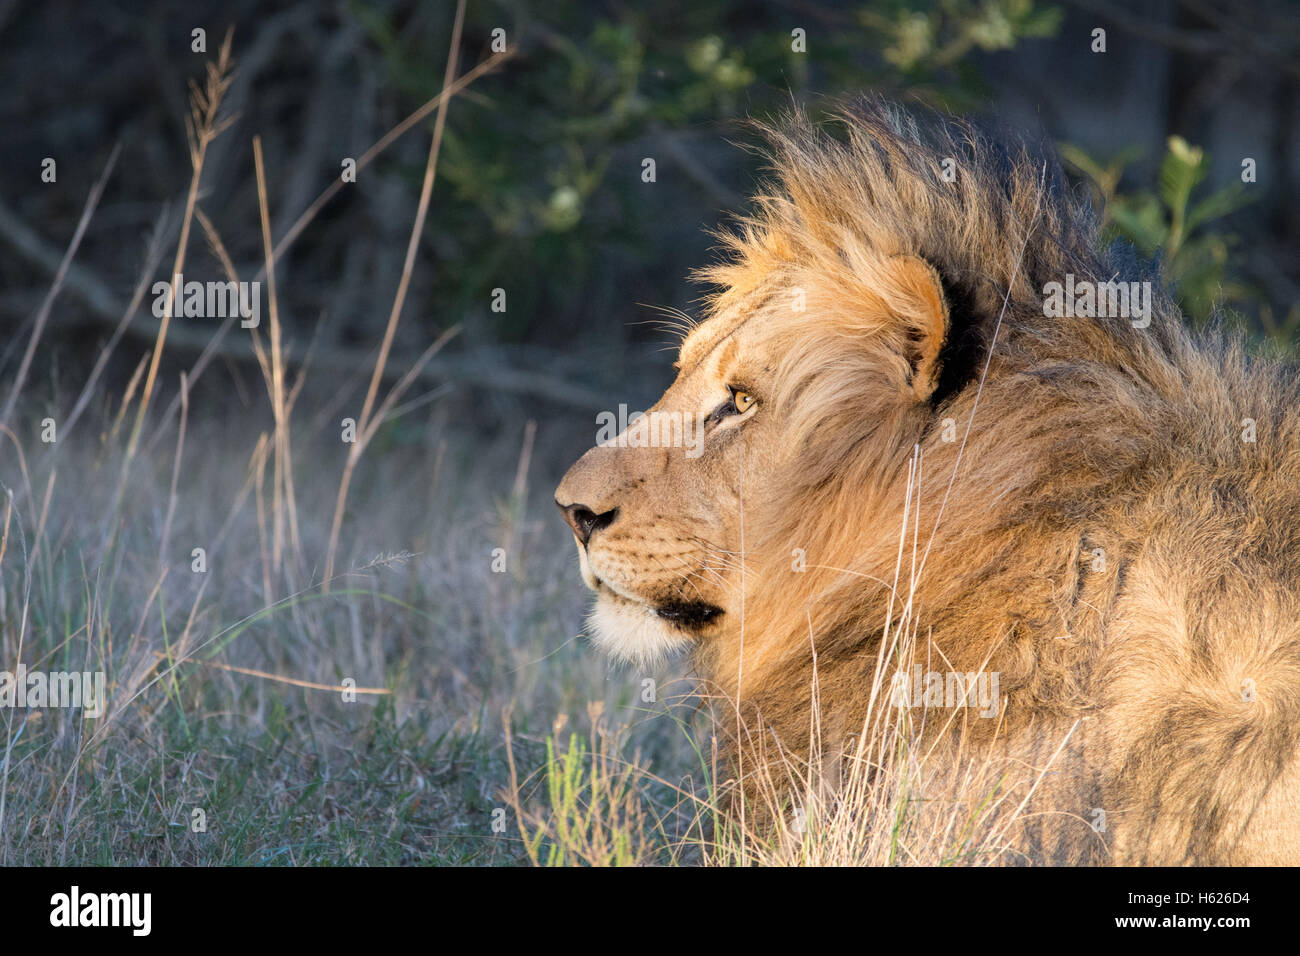 Lion reposant, appréciant le soleil couchant. Photo Stock